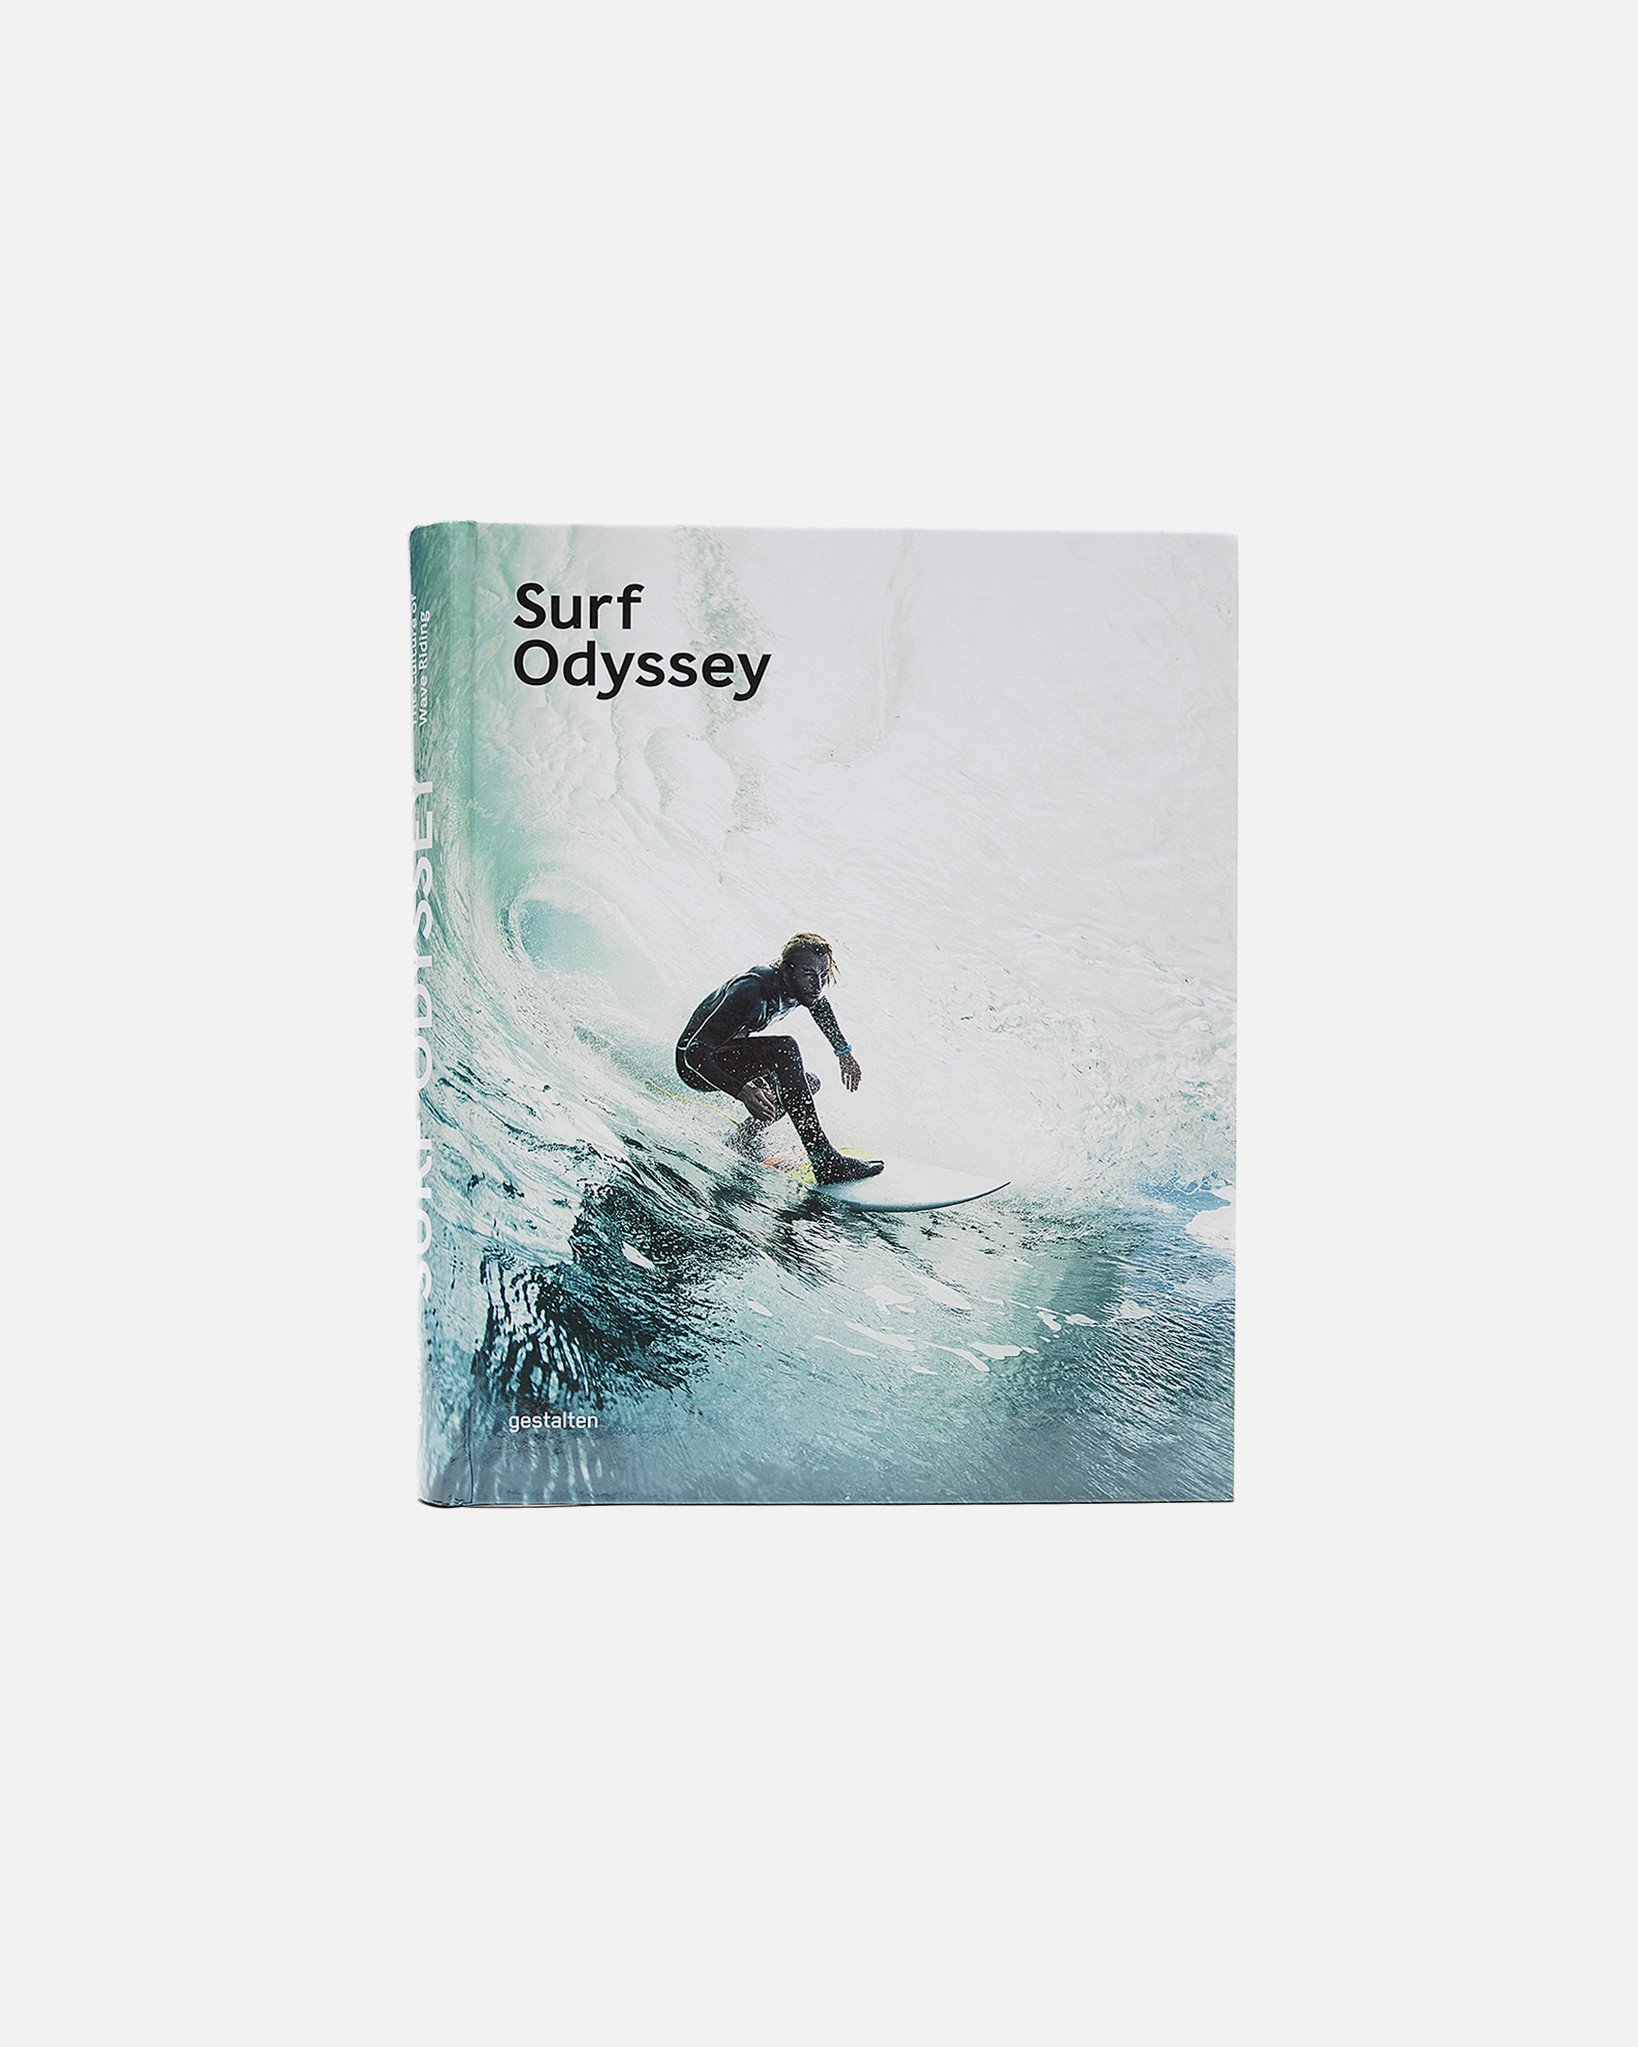 FOR THE SERIOUS SURFER - $55 - Get transported to a world where all that matters is the wave. Surf Odyssey documents the modern cult of surfing and the subculture that surrounds it.Find it on CURIO